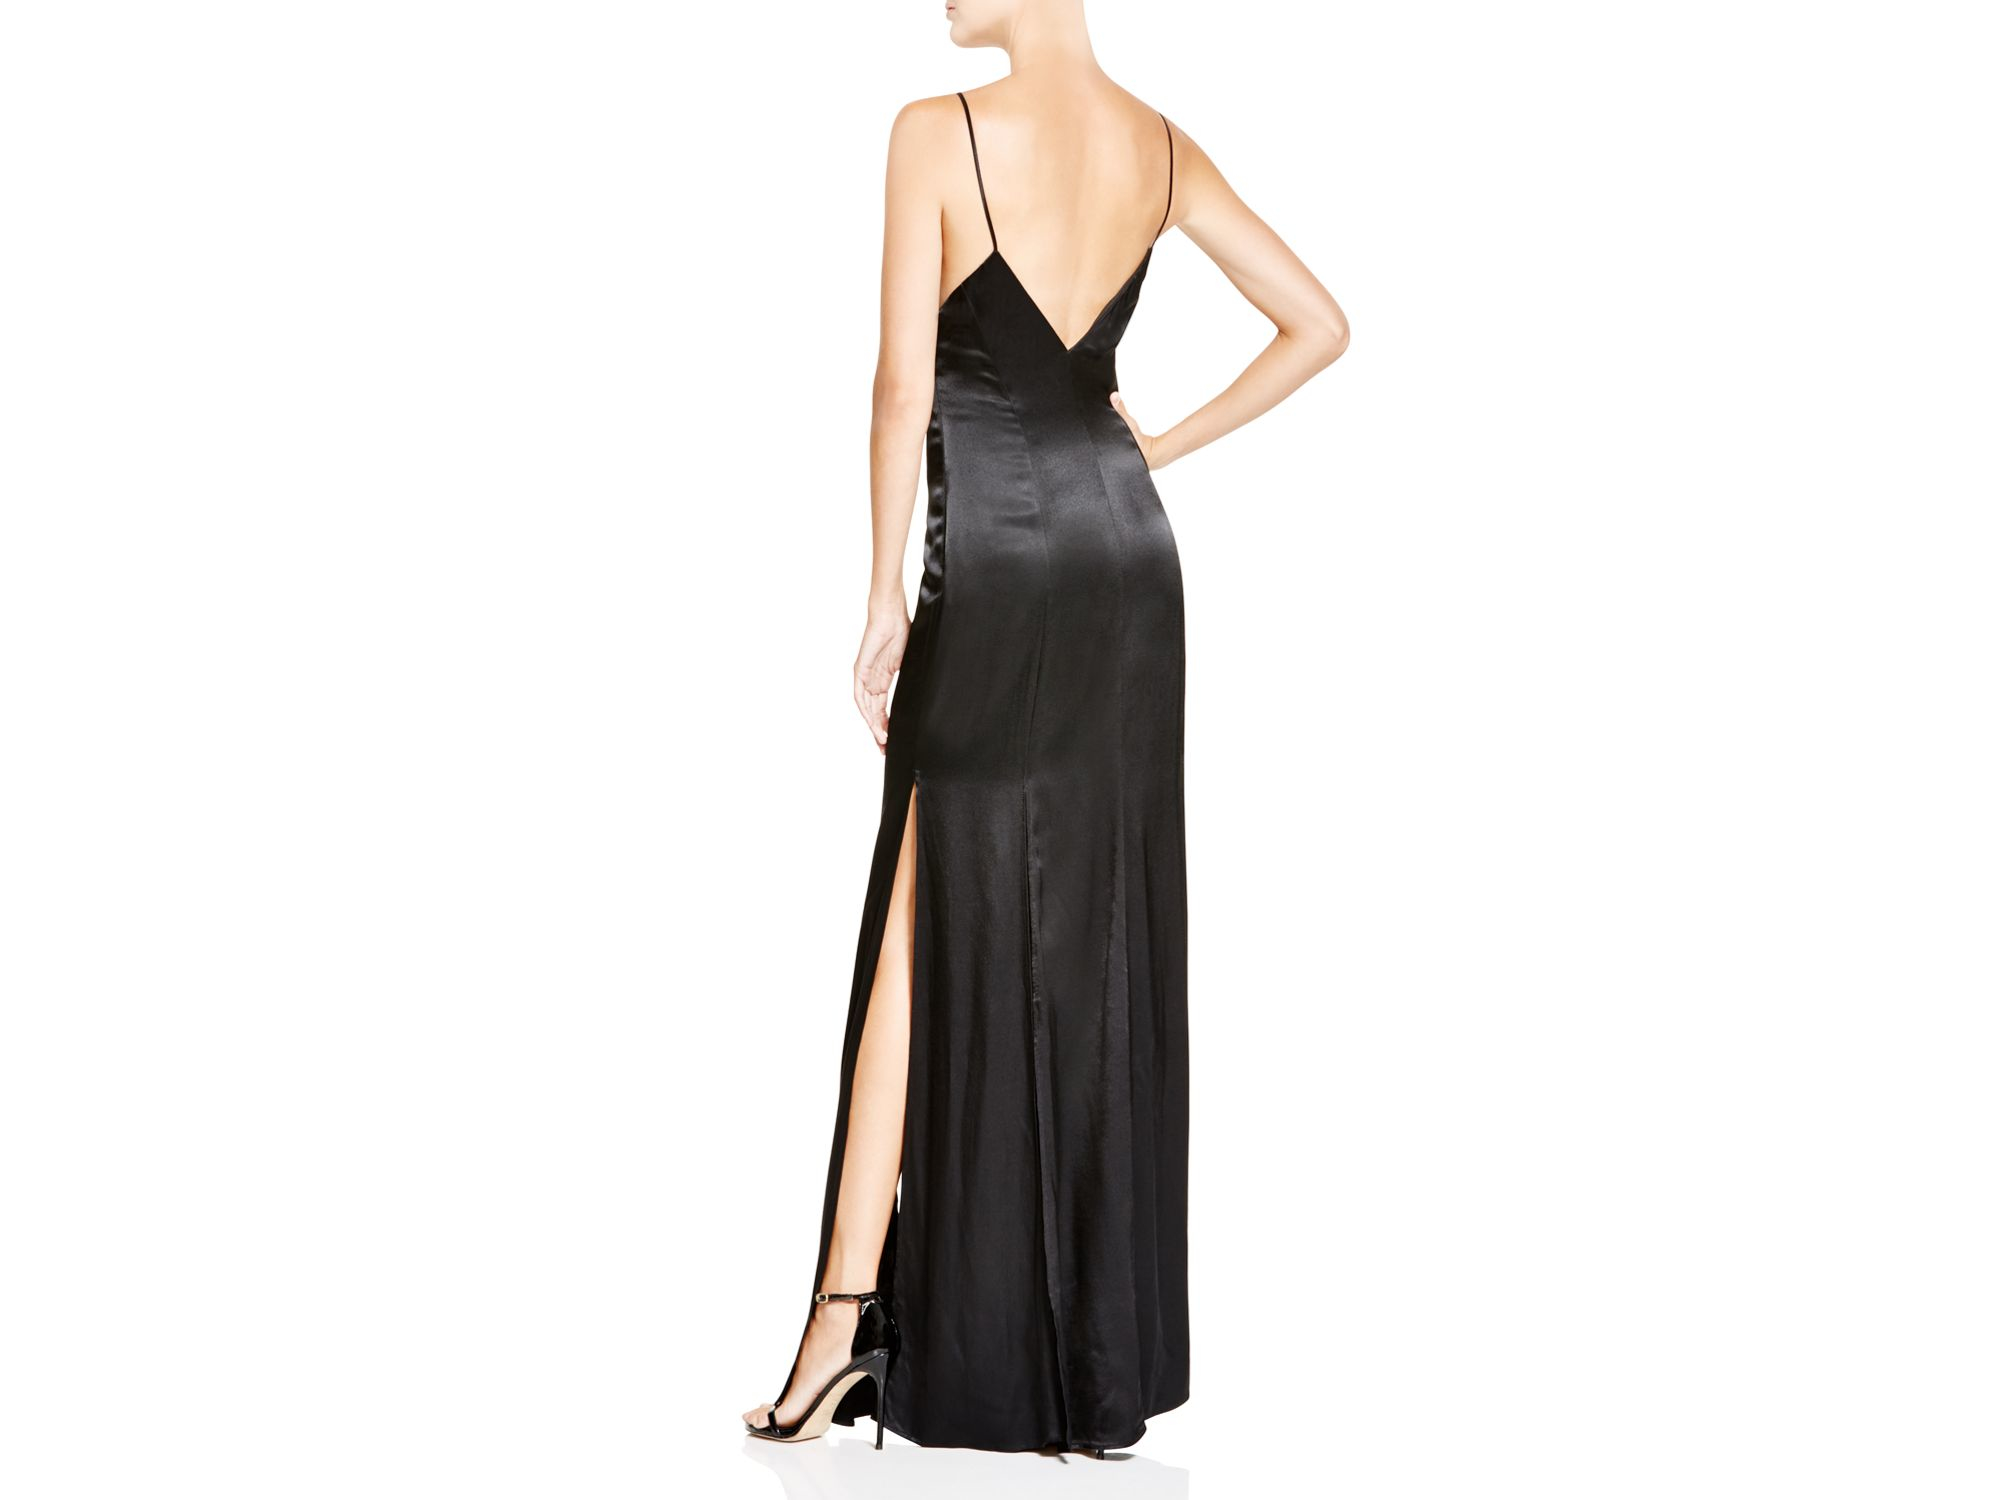 Abs By Allen Schwartz Sleeveless V-neck Dual Slit Gown in Black - Lyst